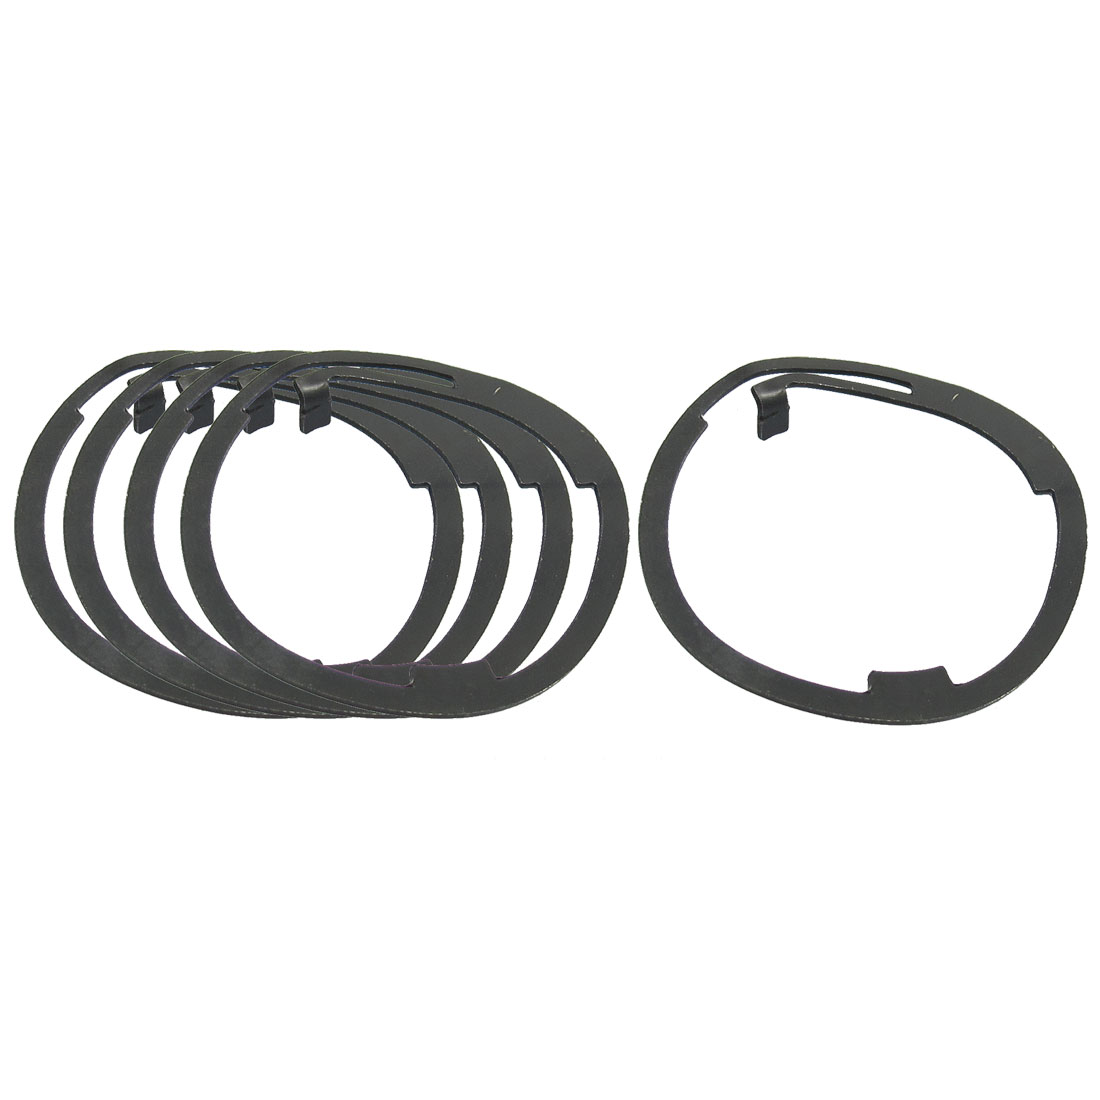 5 Pcs Replacement Metal Spring Washer for DW803 Angle Grinder